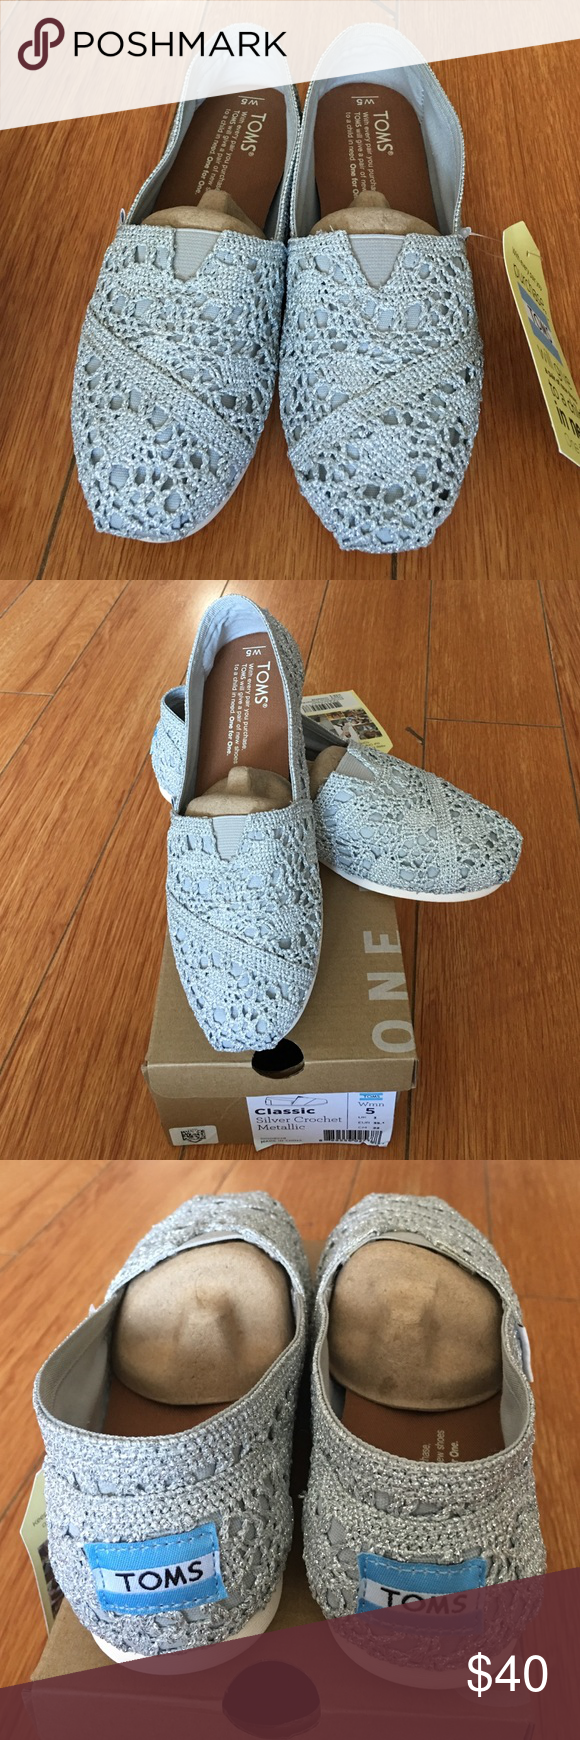 TOMS Classic Silver Crochet Metallic shoes Women's Size 5 • brand new in box • never worn • excellent condition TOMS Shoes Sneakers